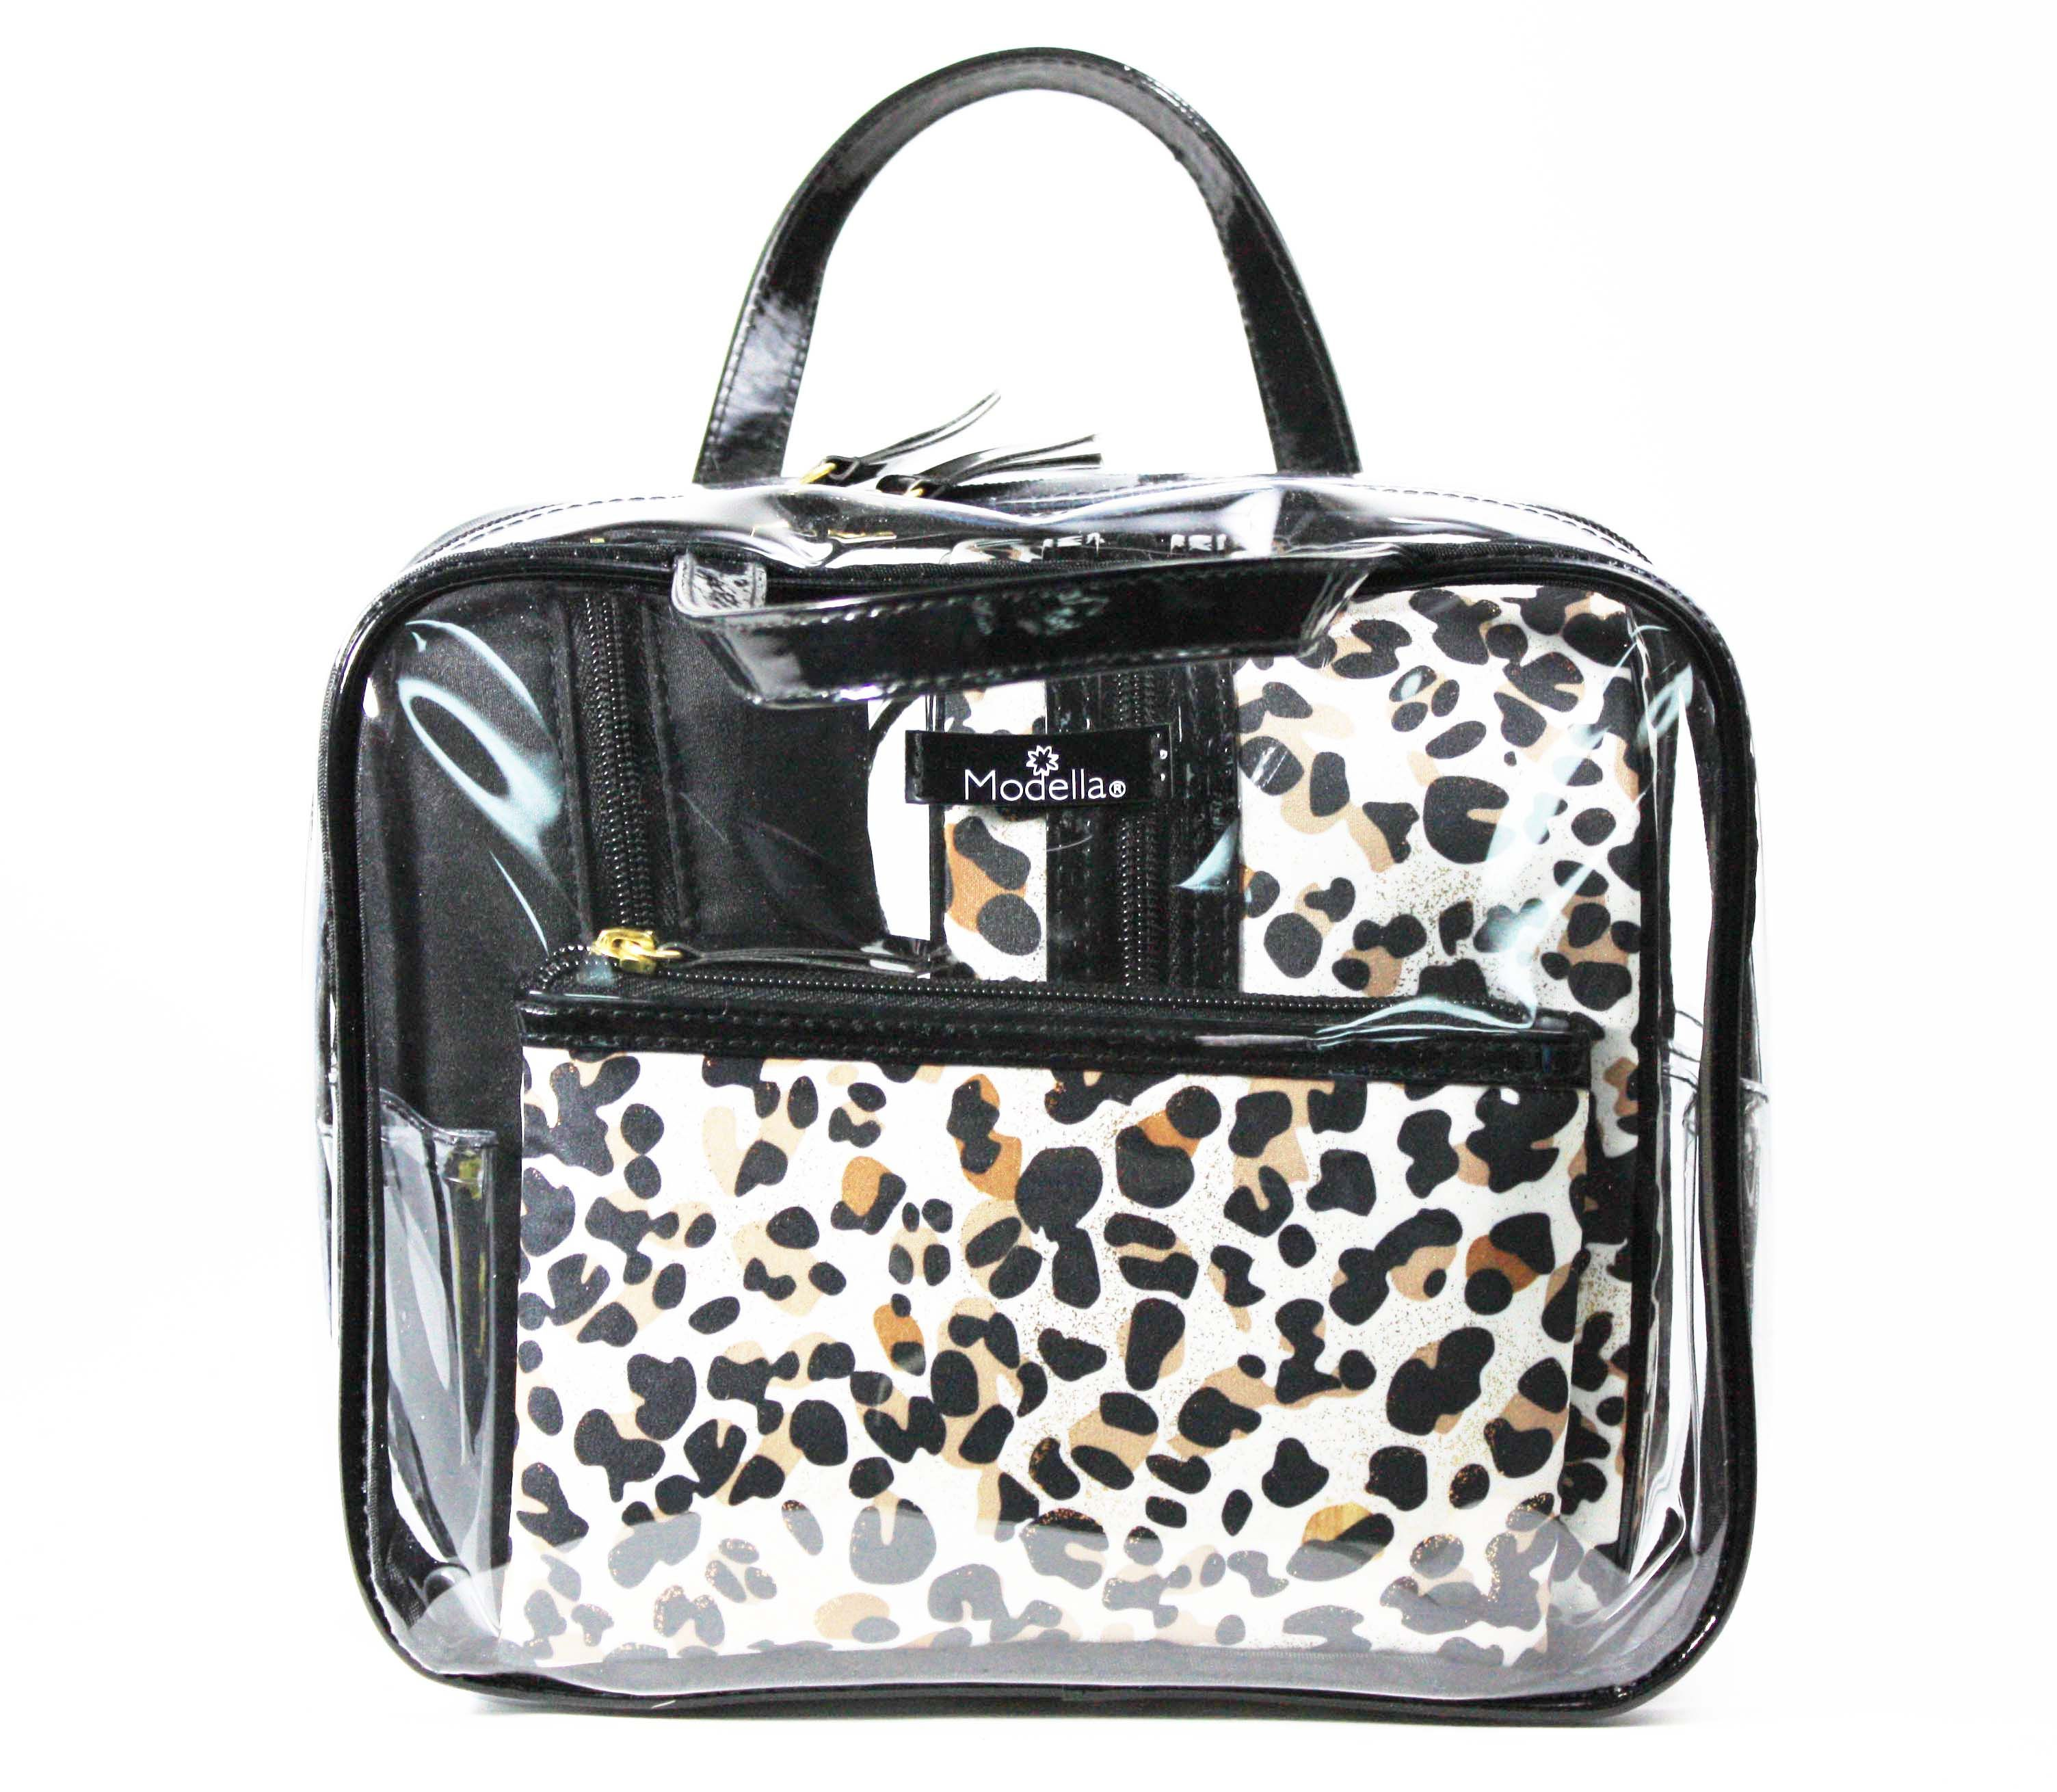 35524d0979 This Modella set features two leapord print bags